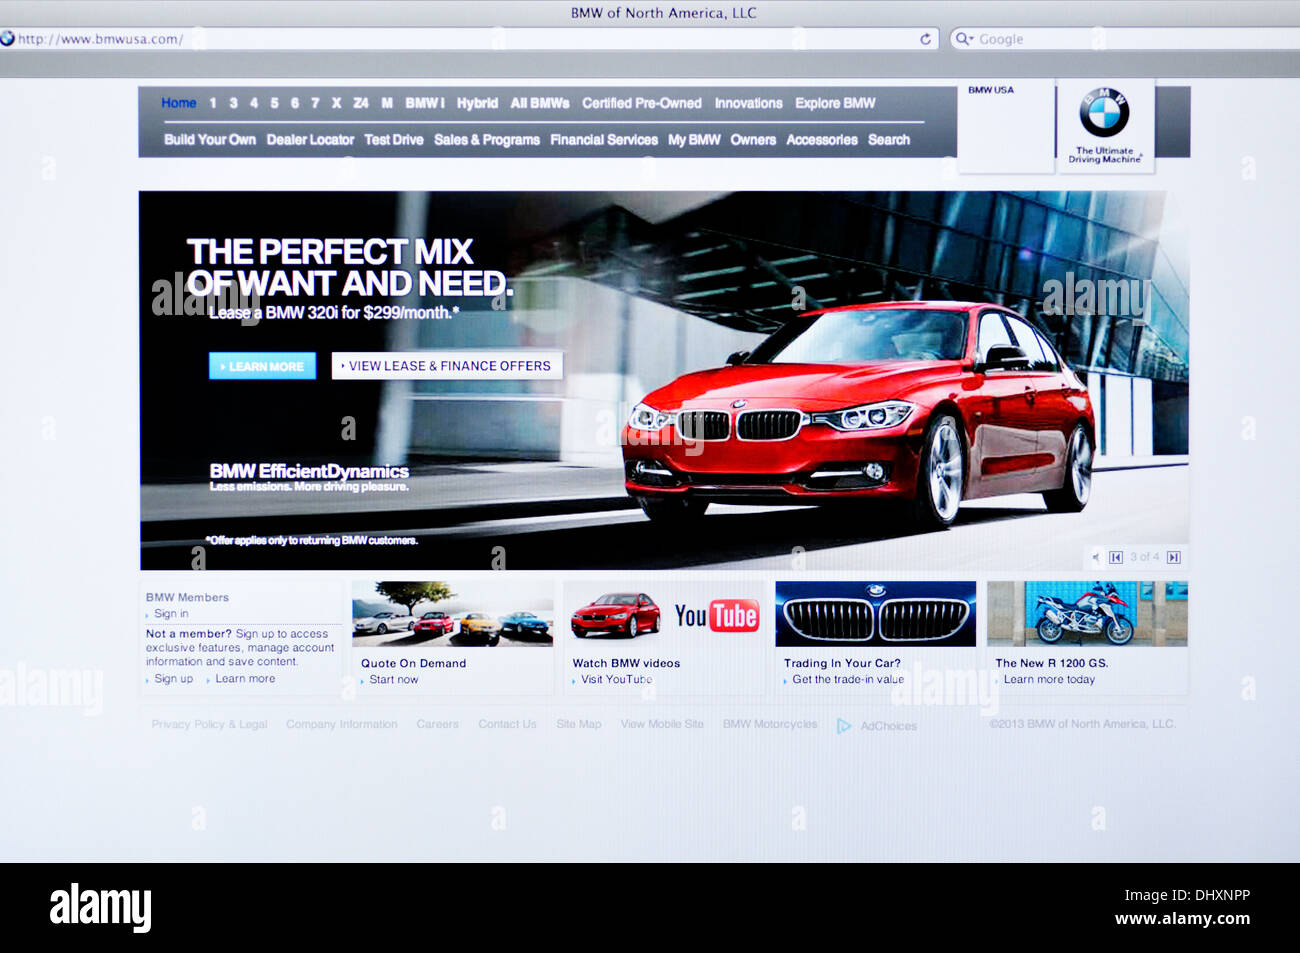 8e99aef604a137 BMW German car manufacturer website Stock Photo  62668110 - Alamy